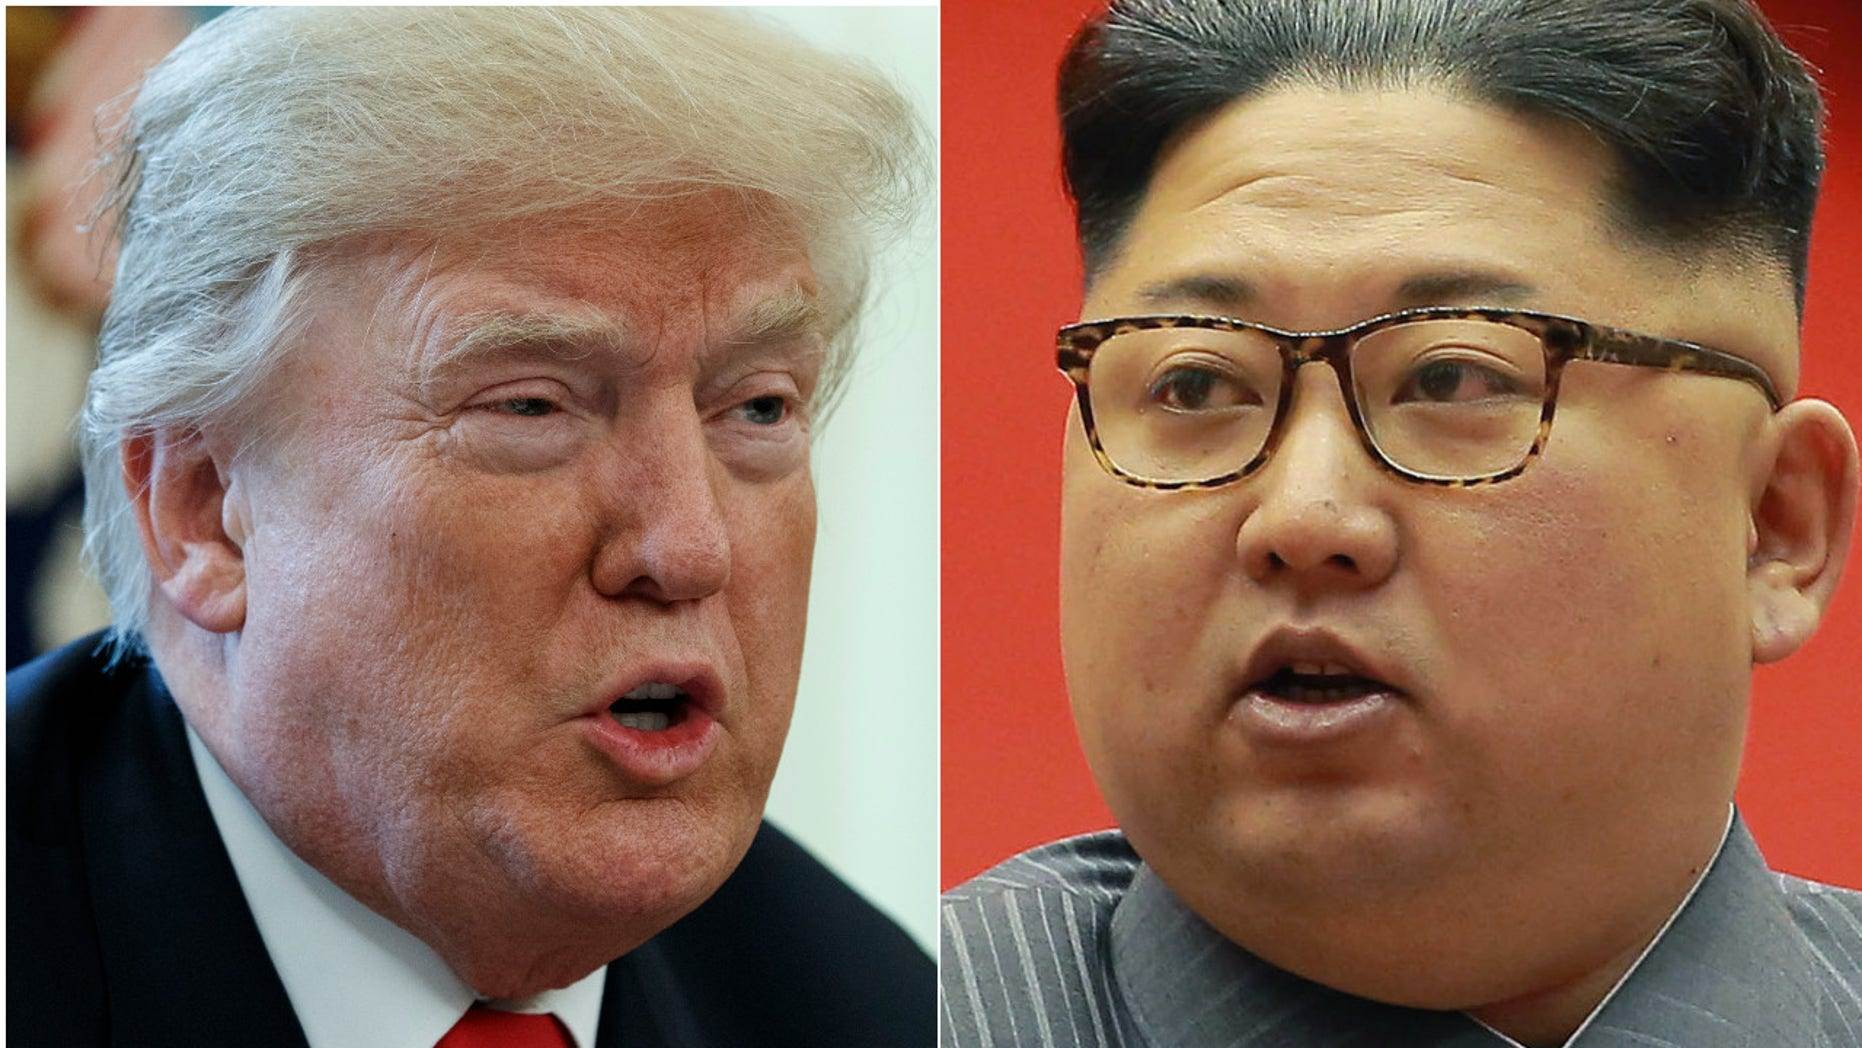 """President Trump, left, says sanctions on North Korea are having a """"big impact,"""" as the rogue regime's dictator Kim Jong Un warns of his nuclear capabilities."""